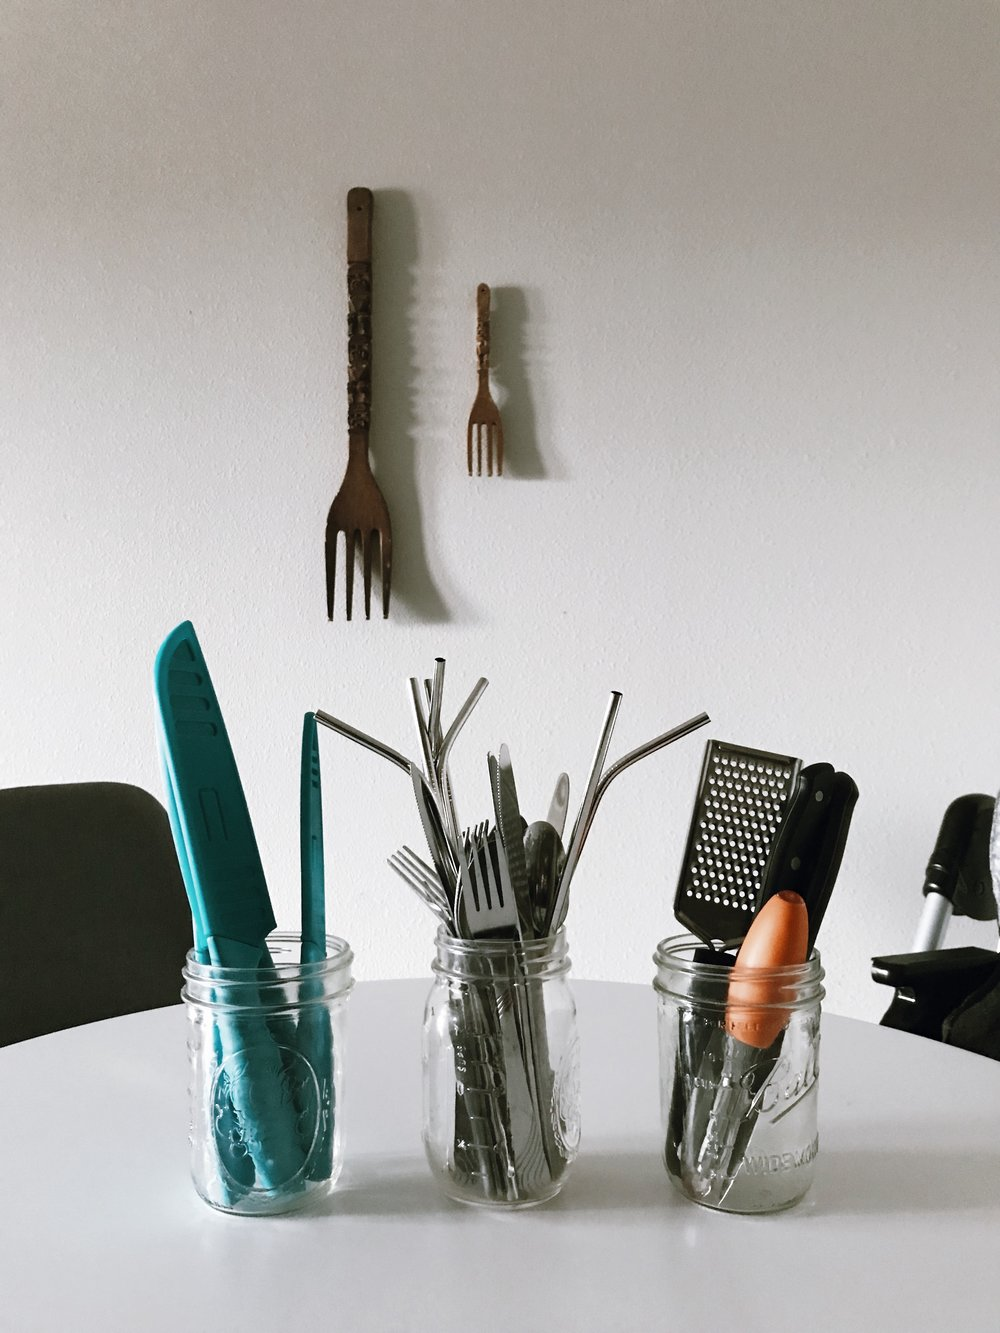 HOME IMPROVEMENT: CUTLERY + UTENSILS - This Wild Home